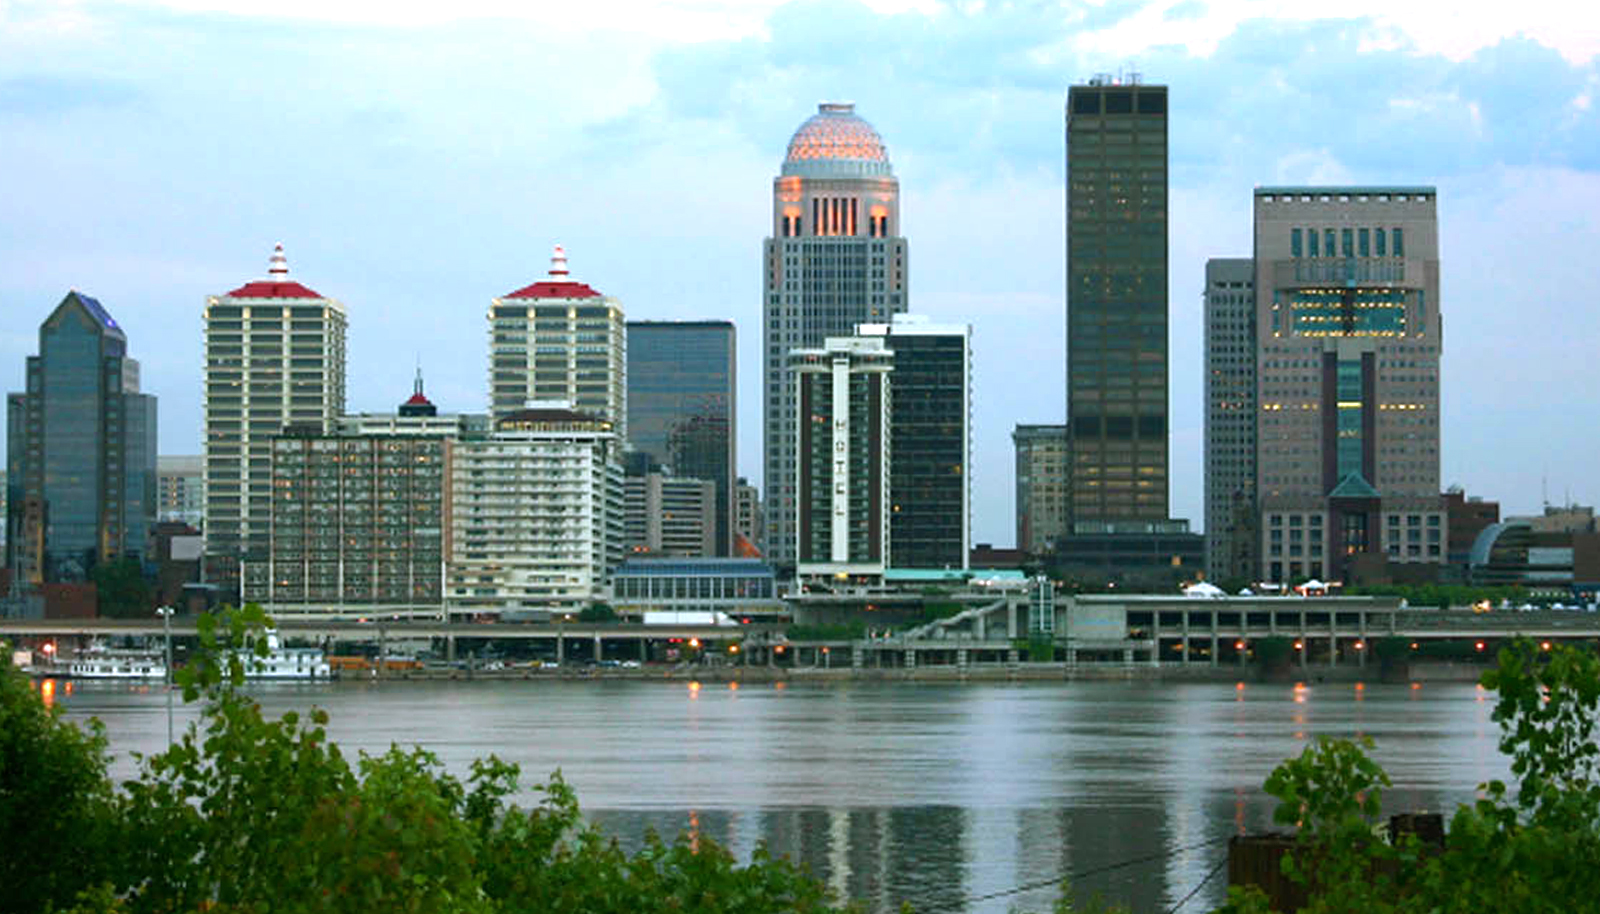 Louisville Skyline with river